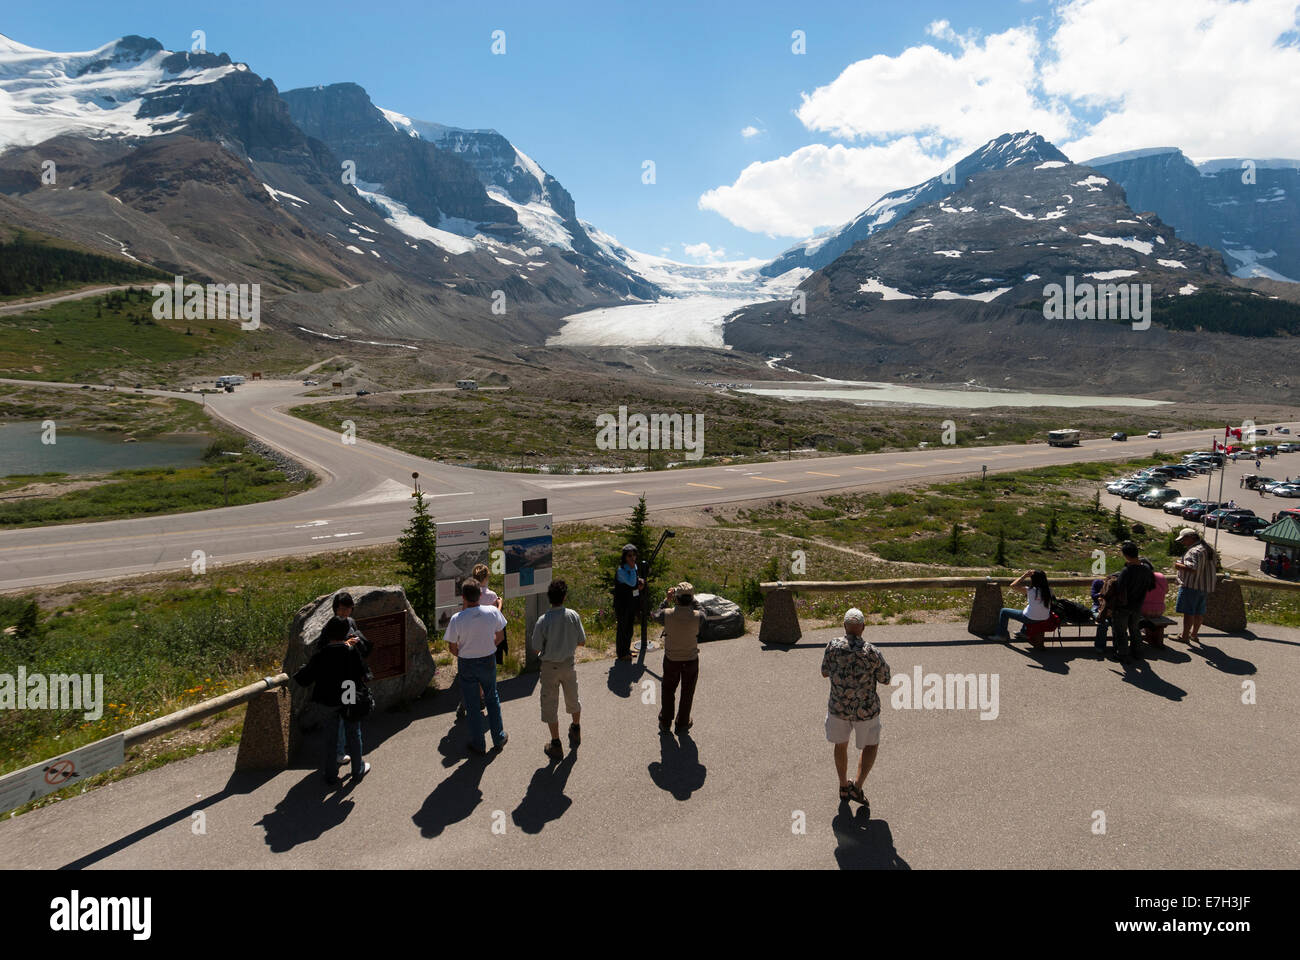 Elk203-7363 Canada, Alberta, Jasper National Park, Columbia Icefield, Visitor Center, view and visitors - Stock Image